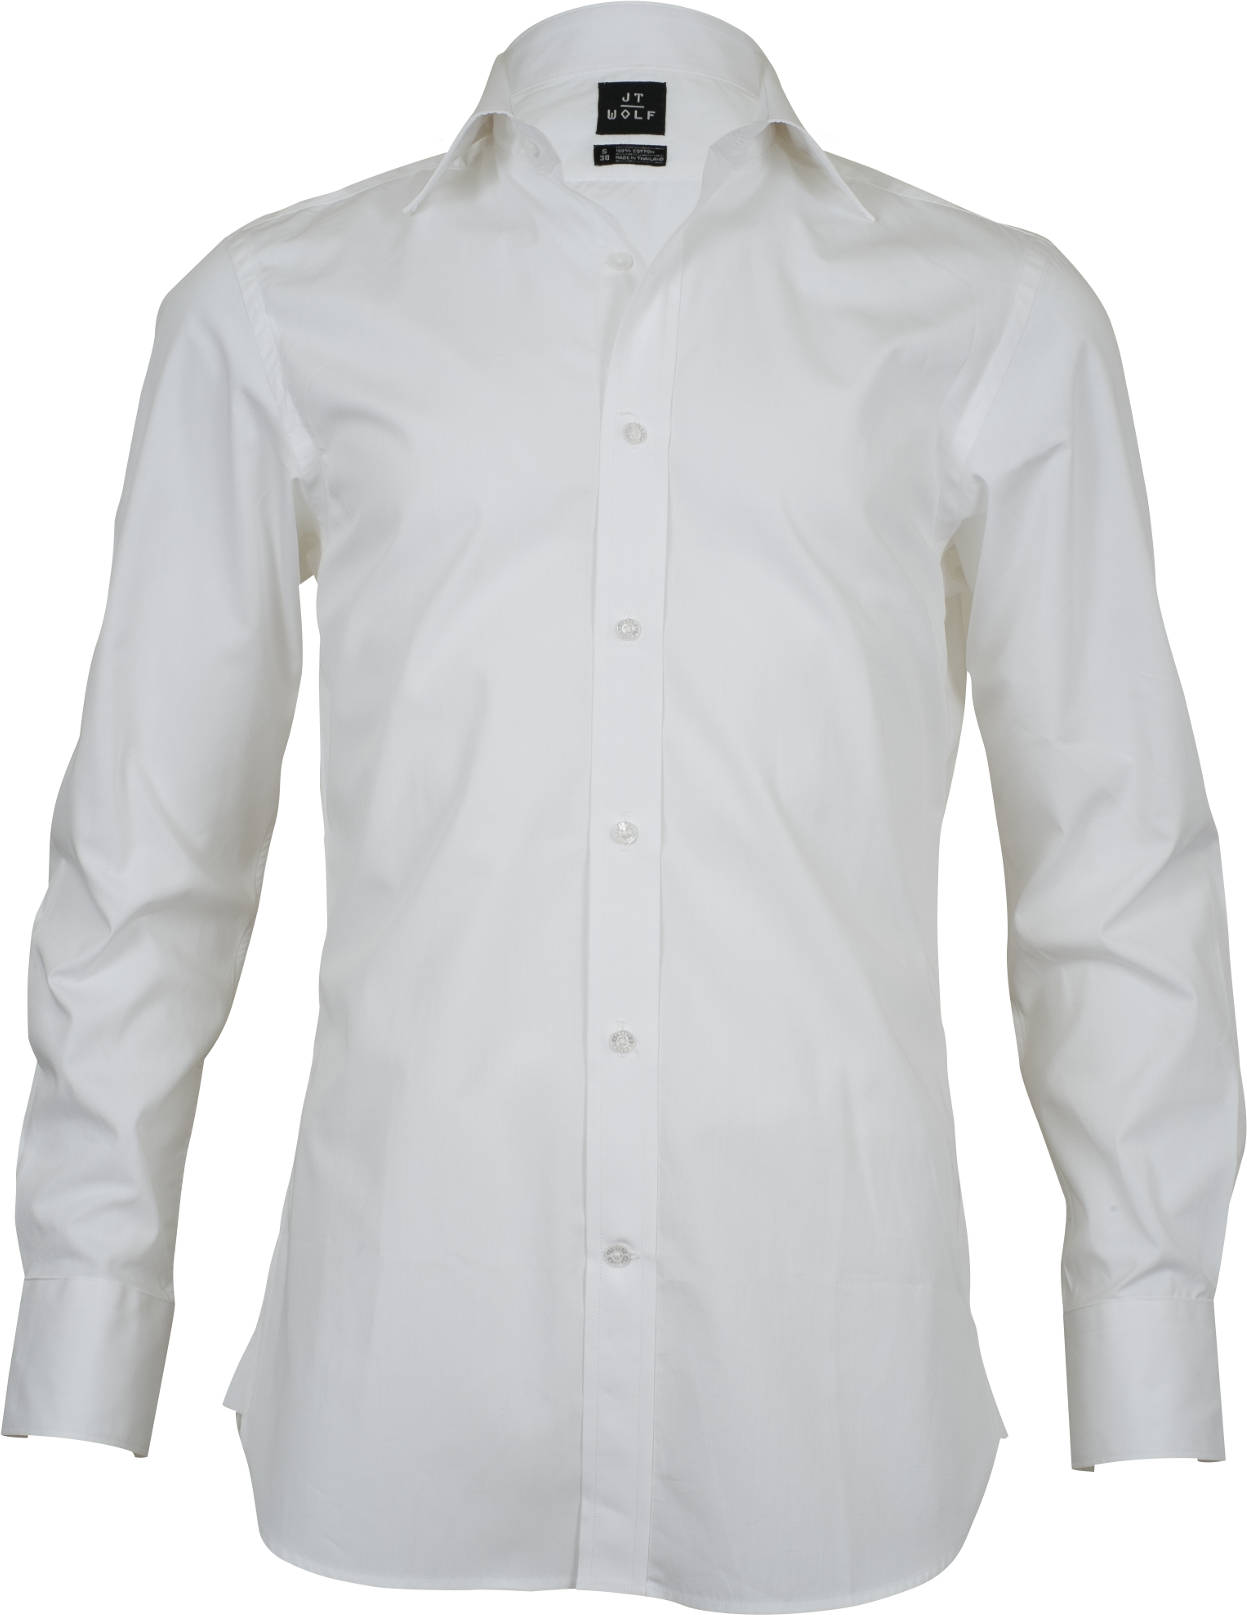 Slim Fit White Solid Business Shirts - JT Wolf Business Shirts